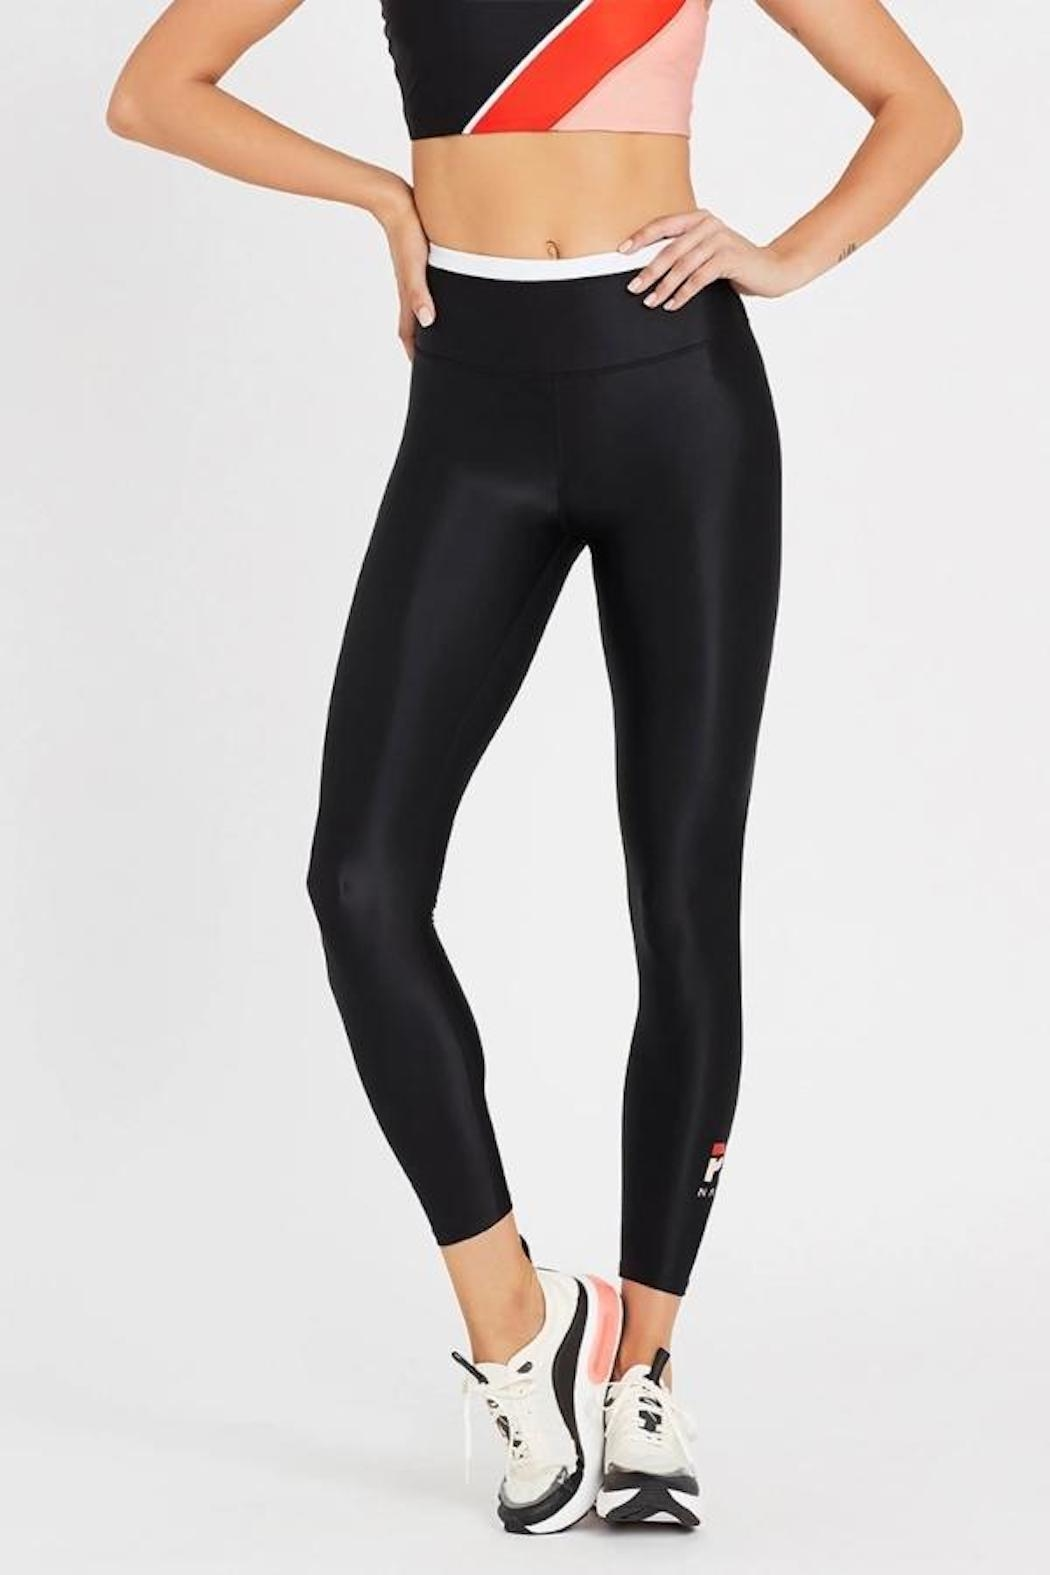 P.E NATION Strike Legging - Front Cropped Image